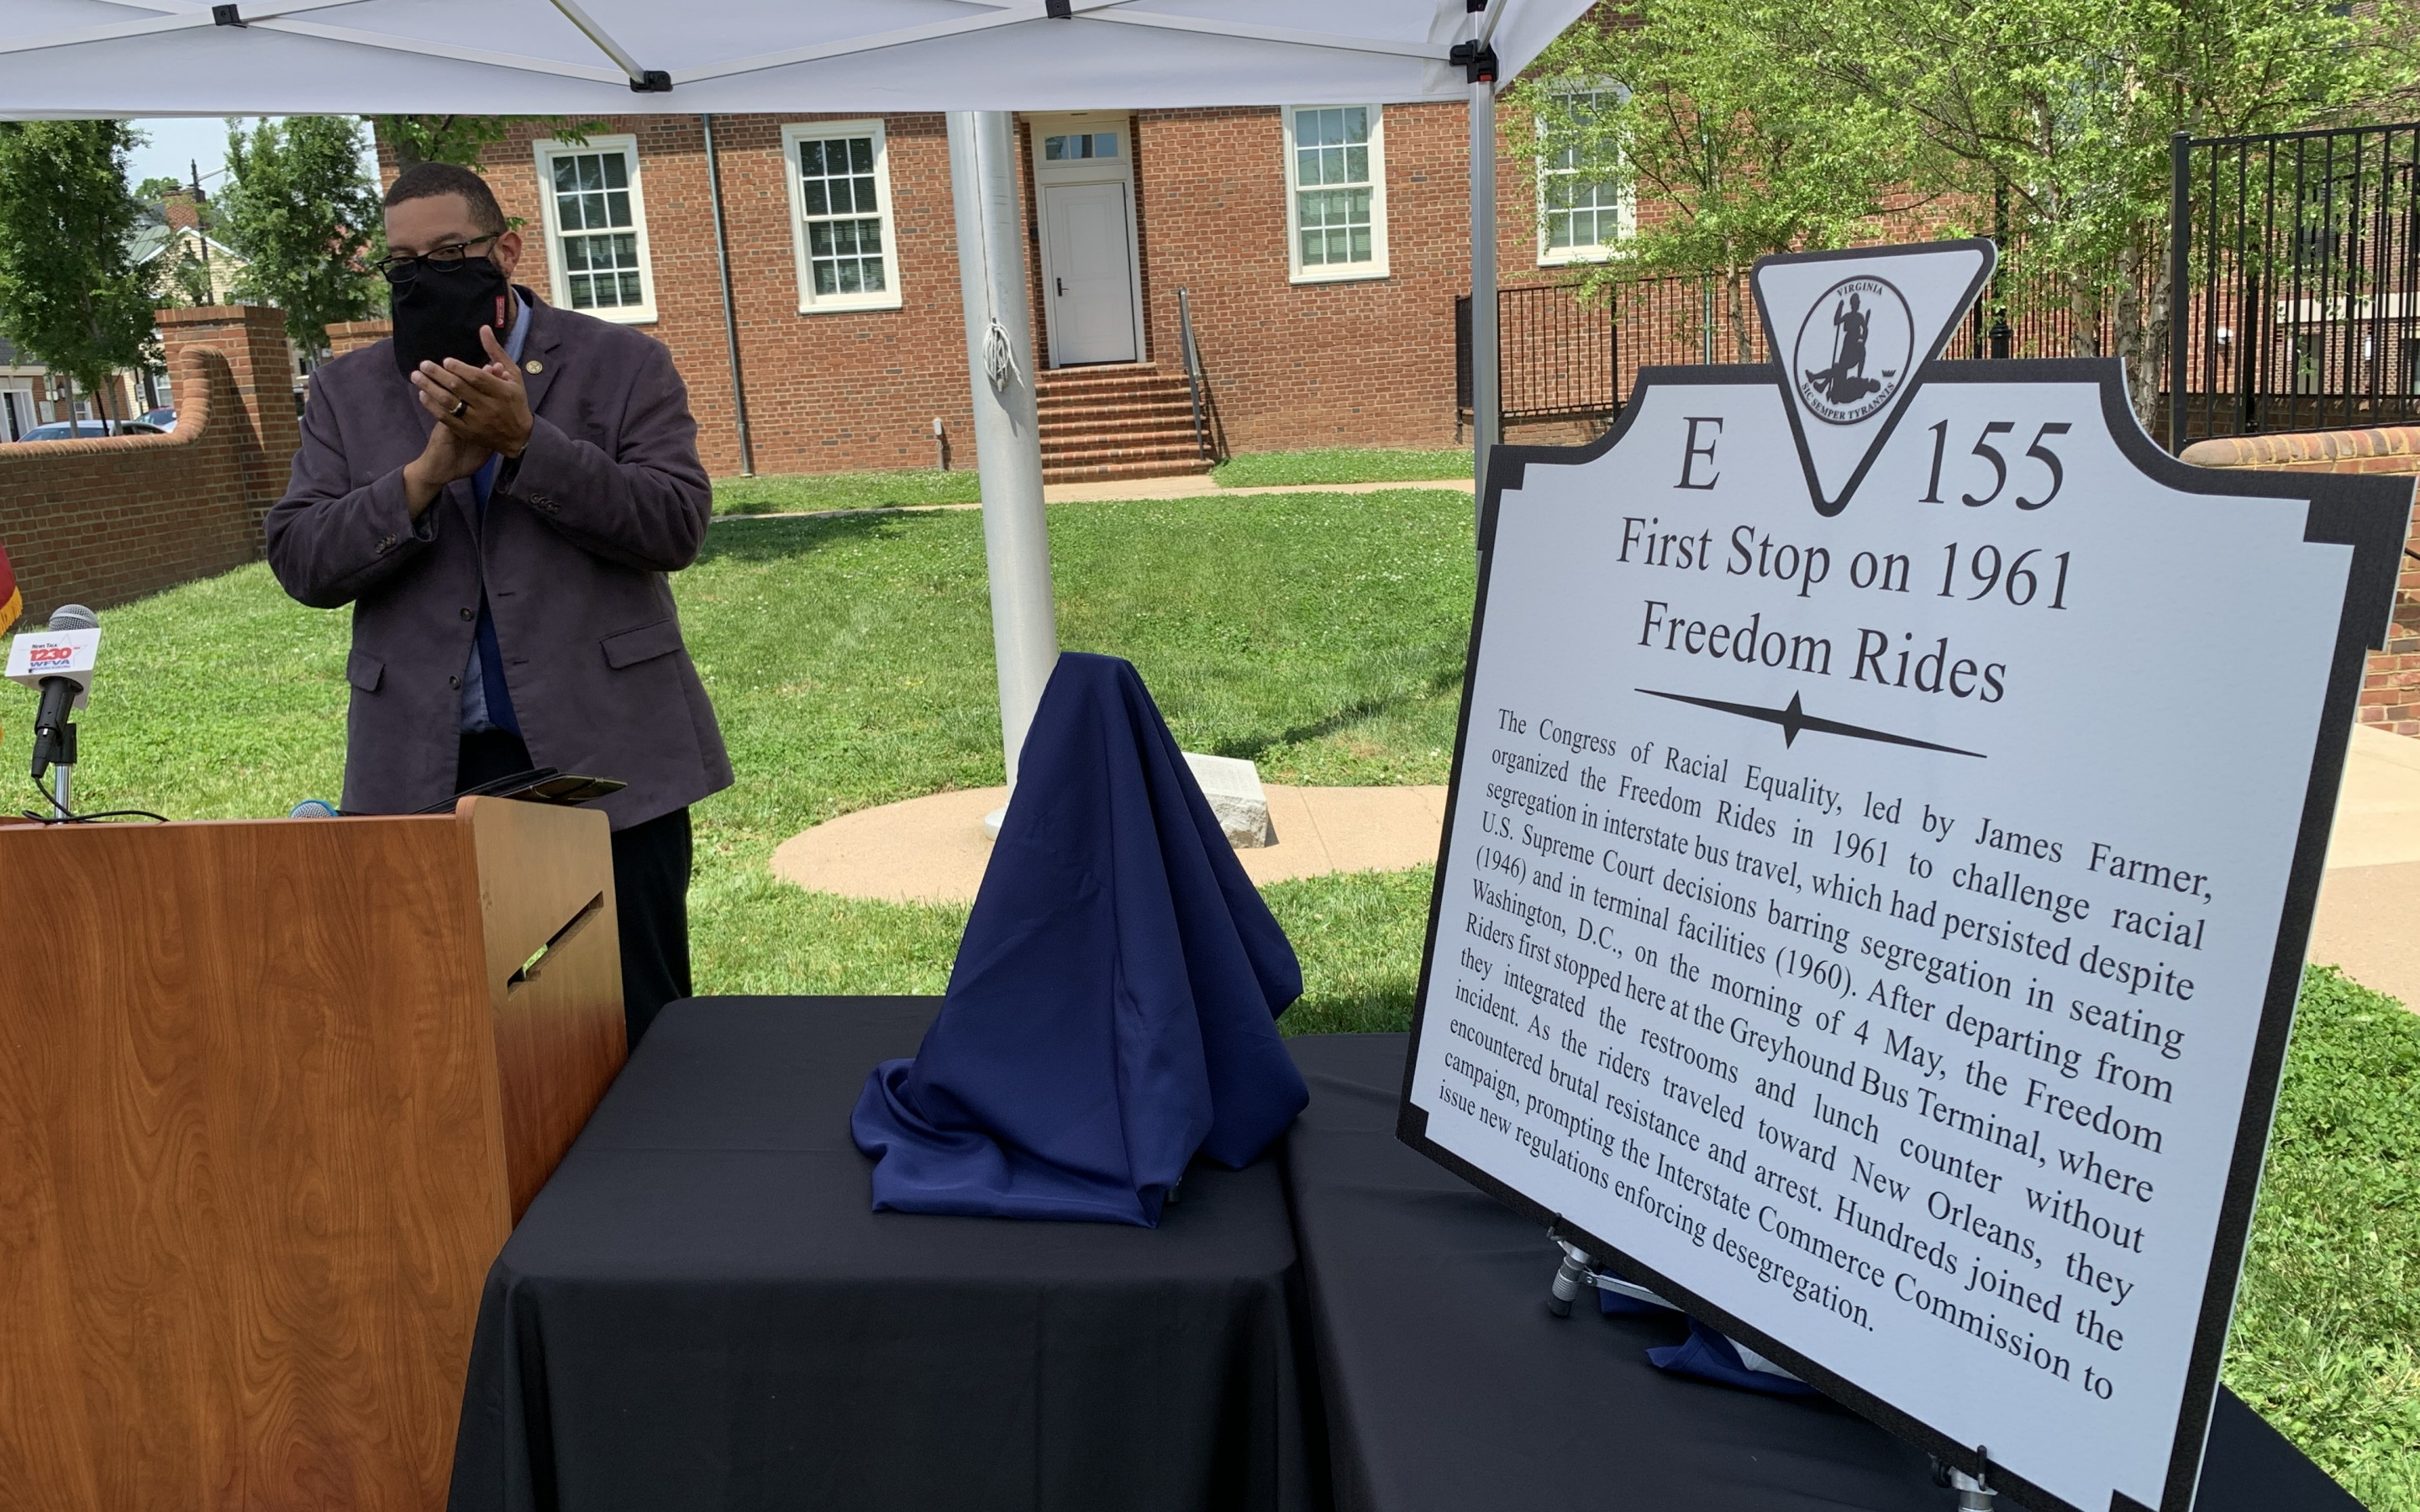 WATCH:  Temporary marker unveiled downtown near the Fire Station to honor the Freedom Riders